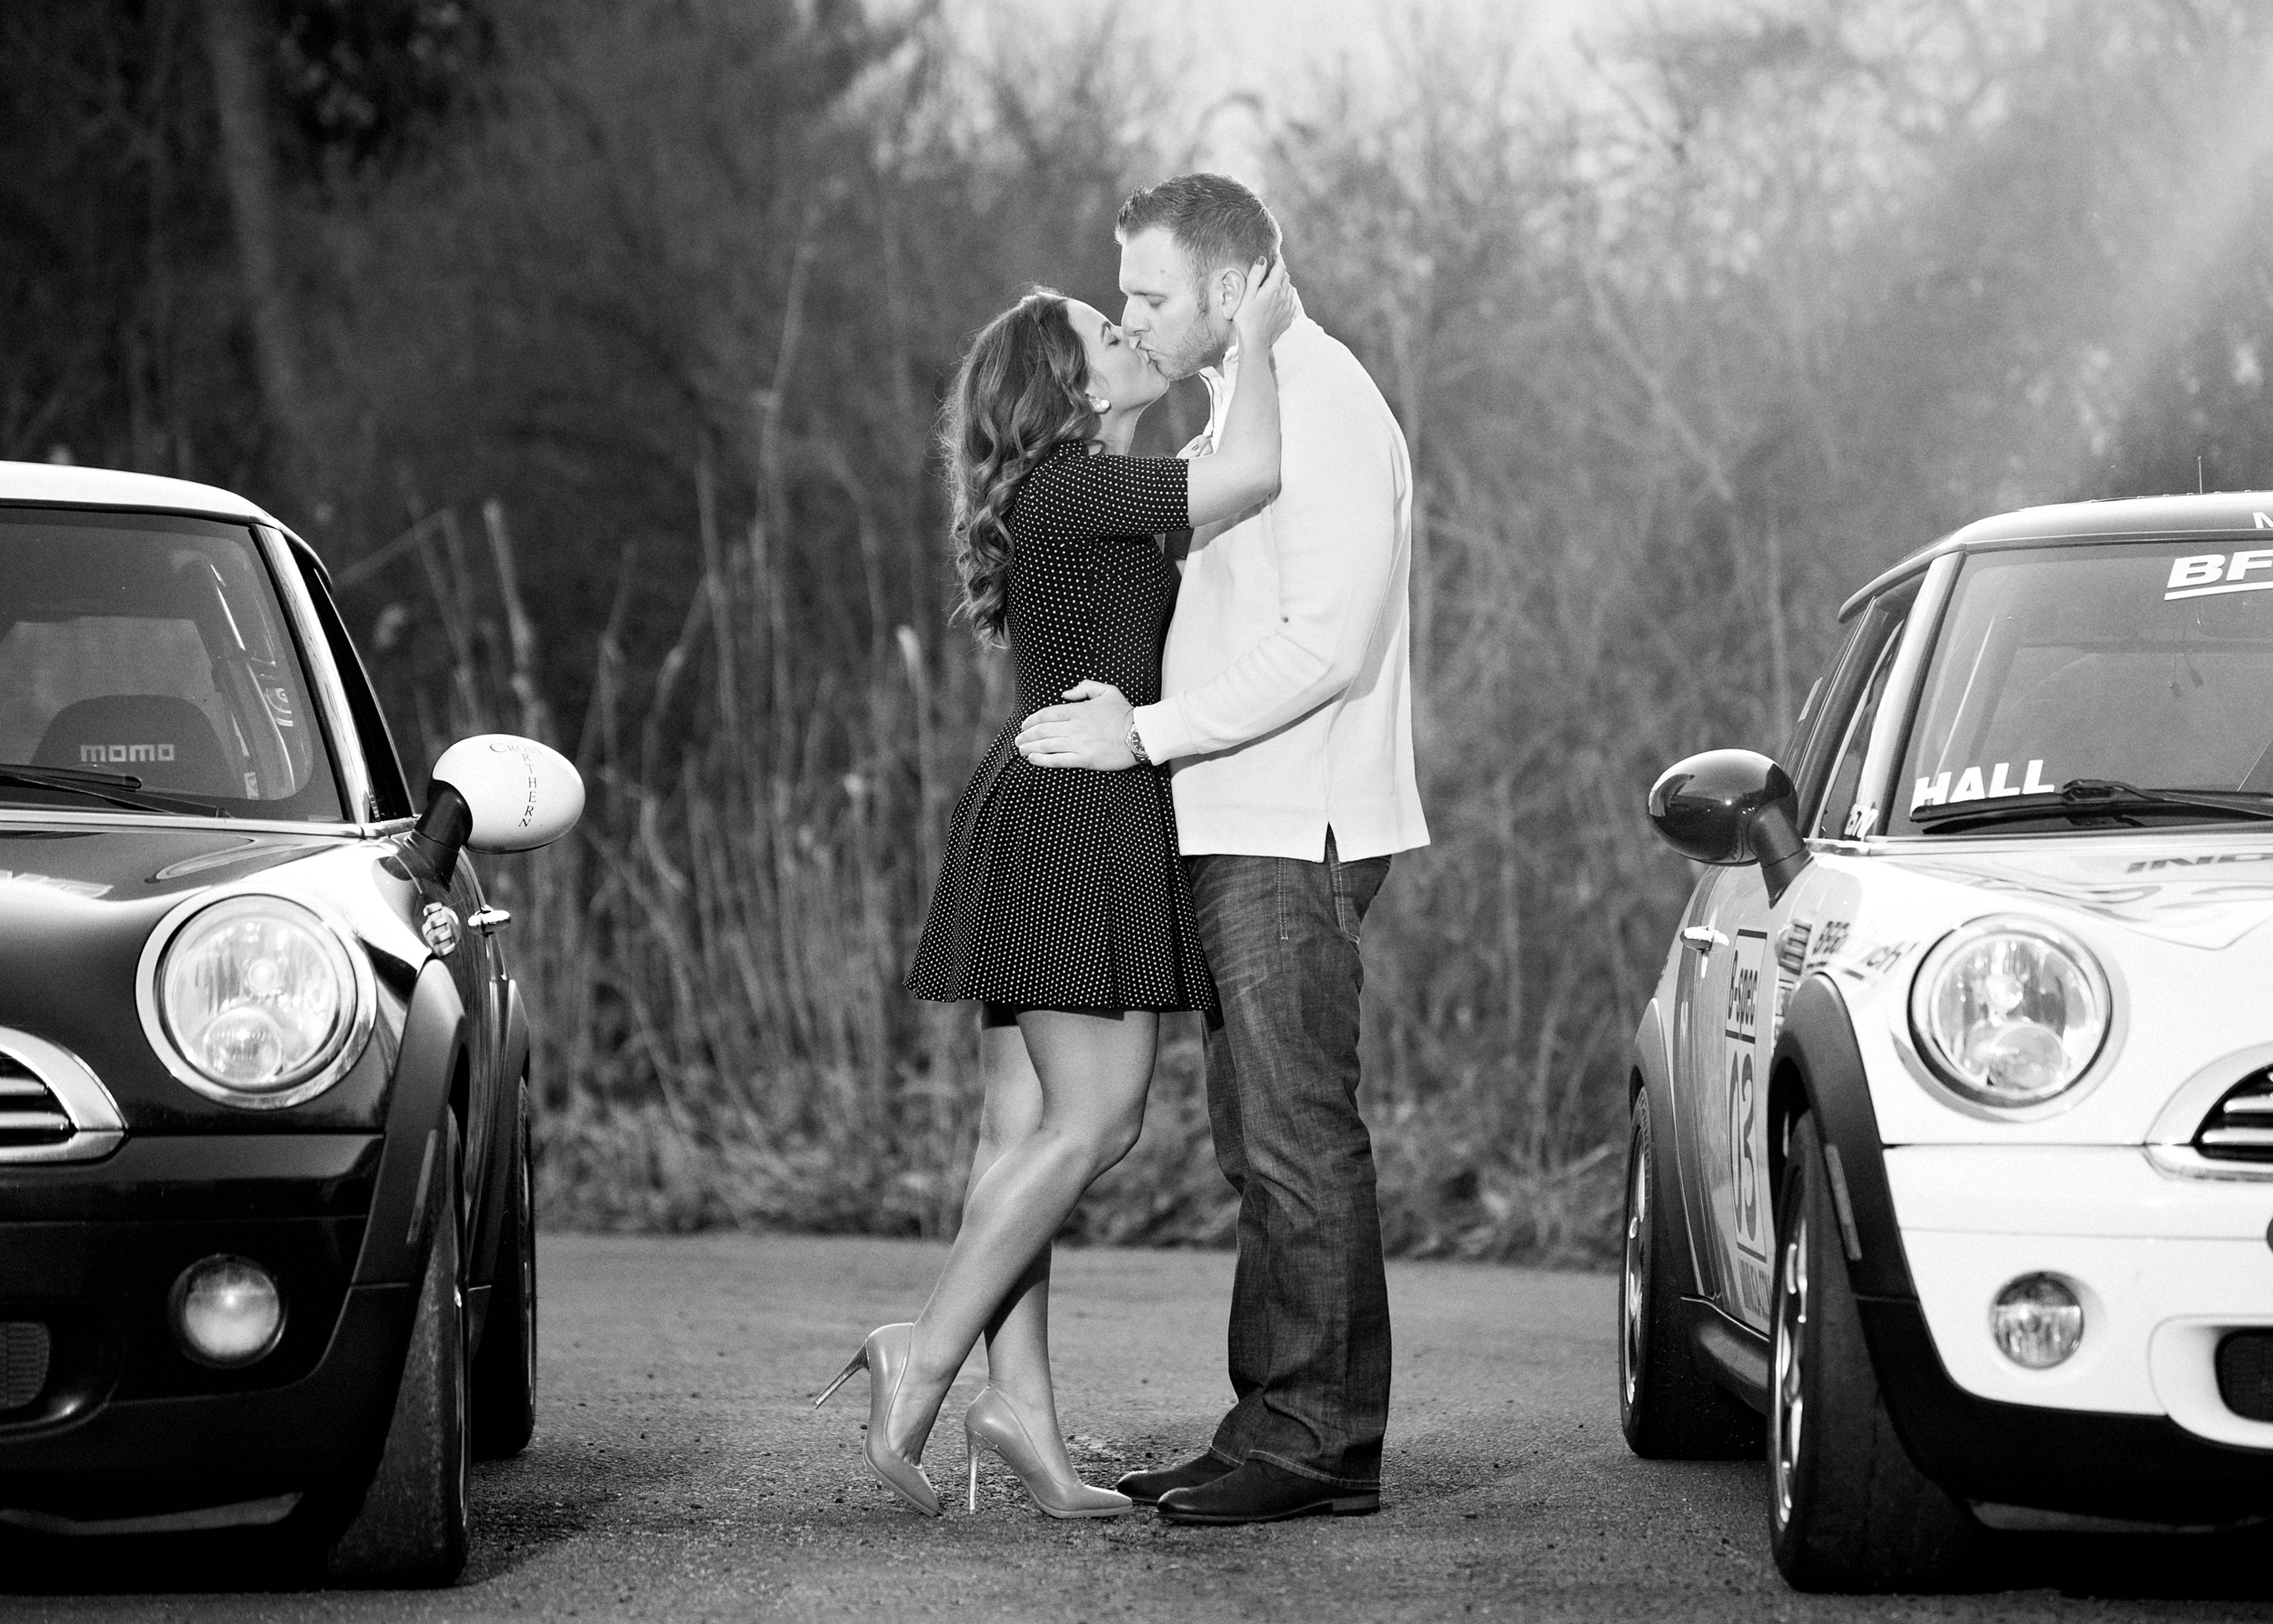 "Testimonial from Caitlin T.    ""Samantha photographed my fiancé and me for what we initially wanted to be just Save the Date photos. A simple photo shoot turned into some of the most fantastic photos I have ever seen! Samantha is insanely talented - our photos turned out phenomenal!! Samantha was so easy to work with, so friendly and warm & professional. Pricing is absolutely reasonable for the quality of work and time that Samantha puts into each step in the process: from consult to session to finishing. I am so very happy to have worked with Samantha, and cannot recommend her more highly!""                       Normal   0           false   false   false     EN-US   X-NONE   X-NONE                                                                                                                                                                                                                                                                                                                                                                                                                                                                                                                                                                                                                                                                                                                                                                                                                                                               /* Style Definitions */  table.MsoNormalTable 	{mso-style-name:""Table Normal""; 	mso-tstyle-rowband-size:0; 	mso-tstyle-colband-size:0; 	mso-style-noshow:yes; 	mso-style-priority:99; 	mso-style-parent:""""; 	mso-padding-alt:0in 5.4pt 0in 5.4pt; 	mso-para-margin-top:0in; 	mso-para-margin-right:0in; 	mso-para-margin-bottom:8.0pt; 	mso-para-margin-left:0in; 	line-height:107%; 	mso-pagination:widow-orphan; 	font-size:11.0pt; 	font-family:""Calibri"",sans-serif; 	mso-ascii-font-family:Calibri; 	mso-ascii-theme-font:minor-latin; 	mso-hansi-font-family:Calibri; 	mso-hansi-theme-font:minor-latin;}                          Normal   0           false   false   false     EN-US   X-NONE   X-NONE                                                                                                                                                                                                                                                                                                                                                                                                                                                                                                                                                                                                                                                                                                                                                                                                                                                               /* Style Definitions */  table.MsoNormalTable 	{mso-style-name:""Table Normal""; 	mso-tstyle-rowband-size:0; 	mso-tstyle-colband-size:0; 	mso-style-noshow:yes; 	mso-style-priority:99; 	mso-style-parent:""""; 	mso-padding-alt:0in 5.4pt 0in 5.4pt; 	mso-para-margin-top:0in; 	mso-para-margin-right:0in; 	mso-para-margin-bottom:8.0pt; 	mso-para-margin-left:0in; 	line-height:107%; 	mso-pagination:widow-orphan; 	font-size:11.0pt; 	font-family:""Calibri"",sans-serif; 	mso-ascii-font-family:Calibri; 	mso-ascii-theme-font:minor-latin; 	mso-hansi-font-family:Calibri; 	mso-hansi-theme-font:minor-latin;}"